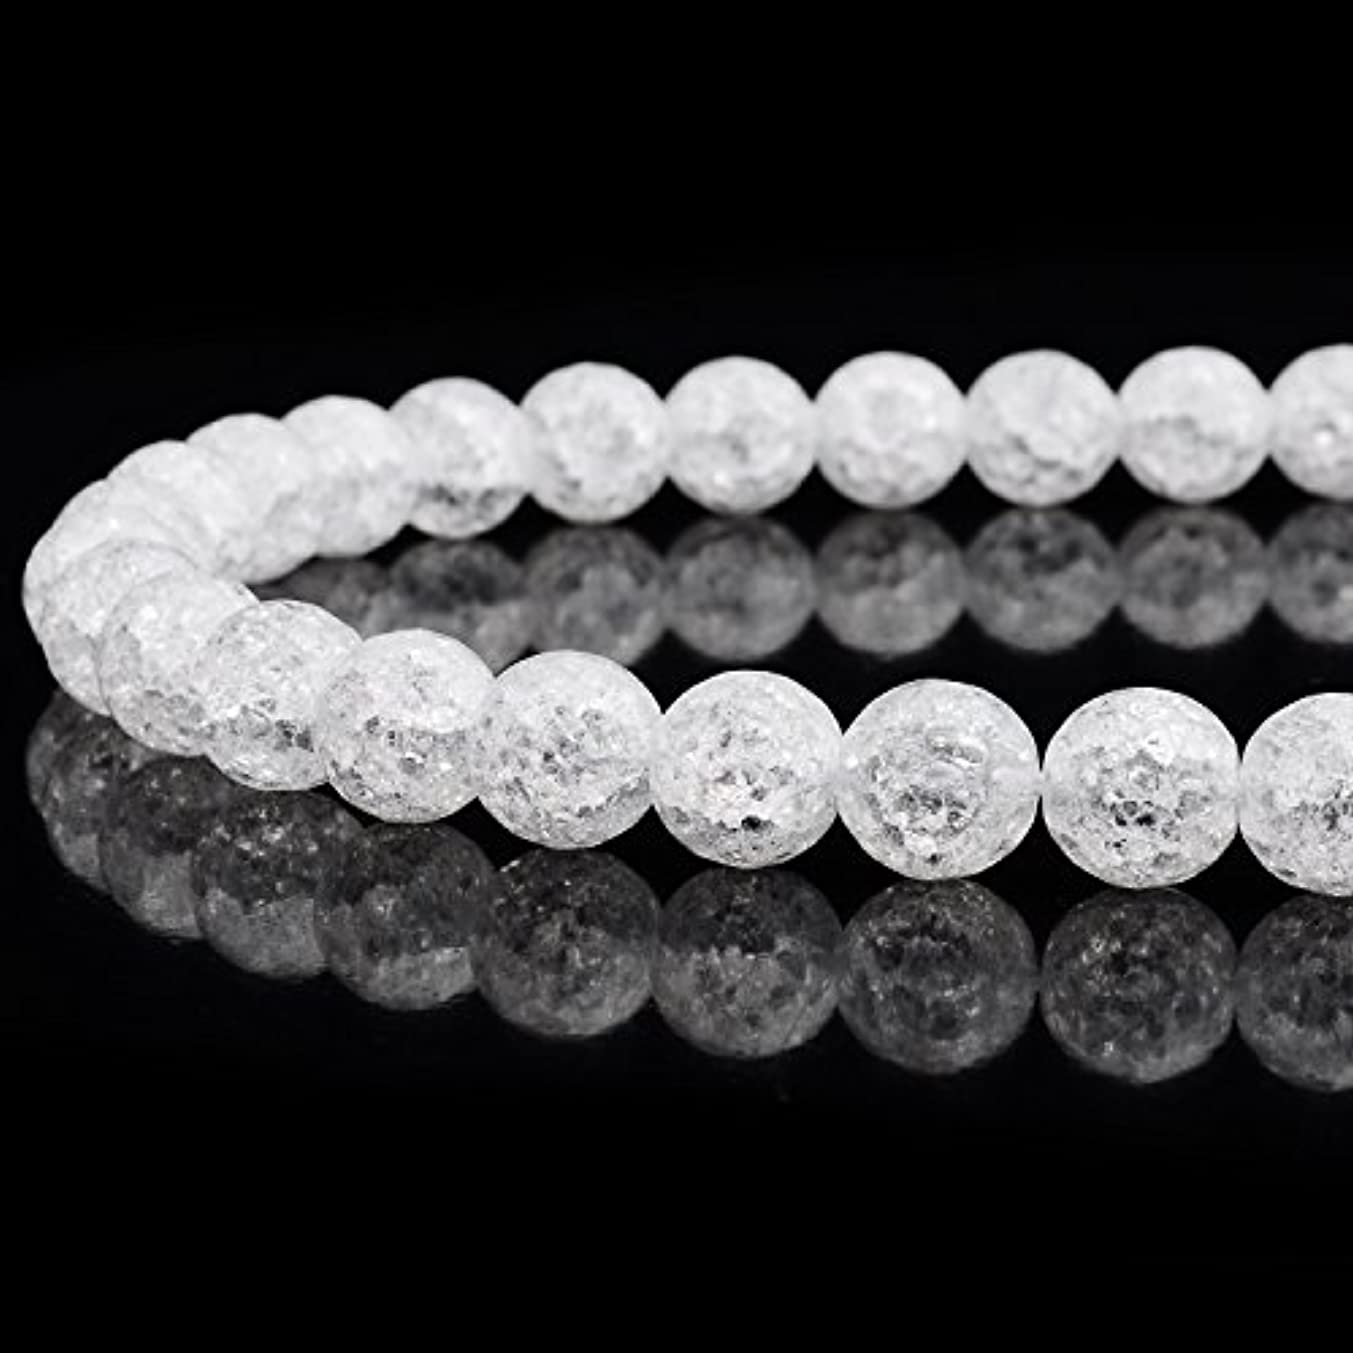 RUBYCA Natural AAA Grade White Clear Quartz Crystal Crackle Round Beads Jewelry Making 1 strand 10mm